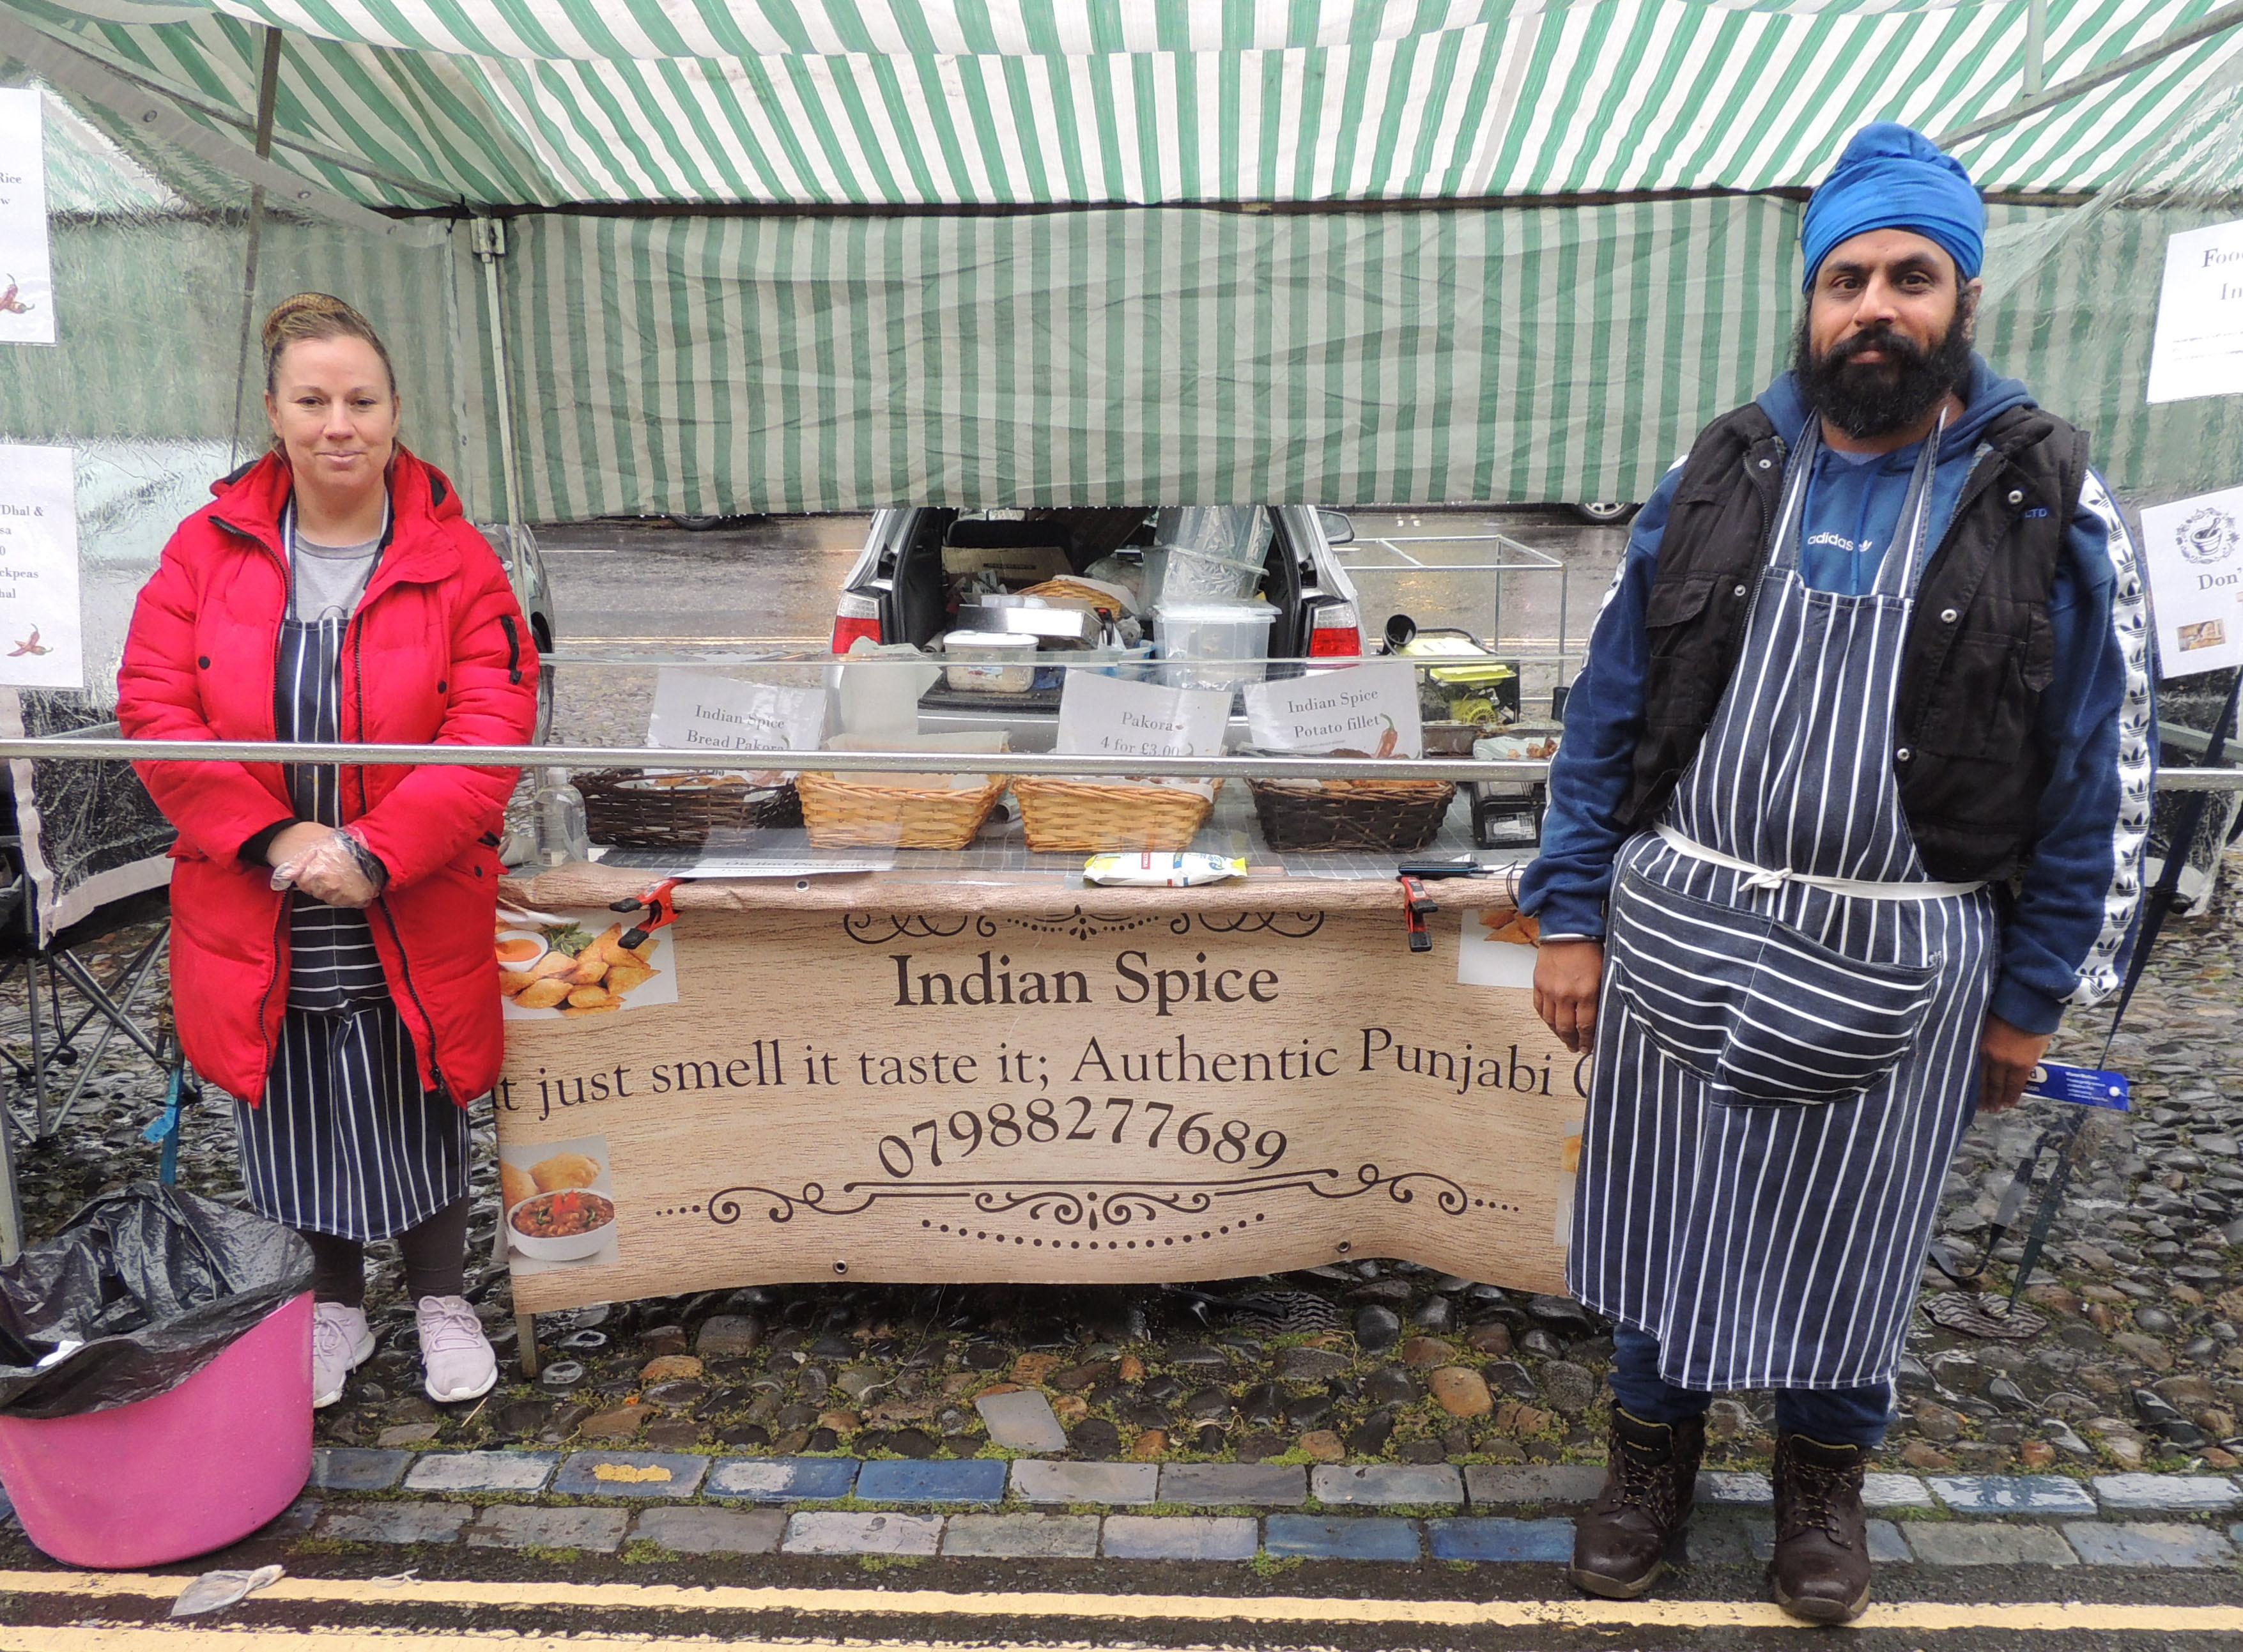 Indian Spice Northallerton